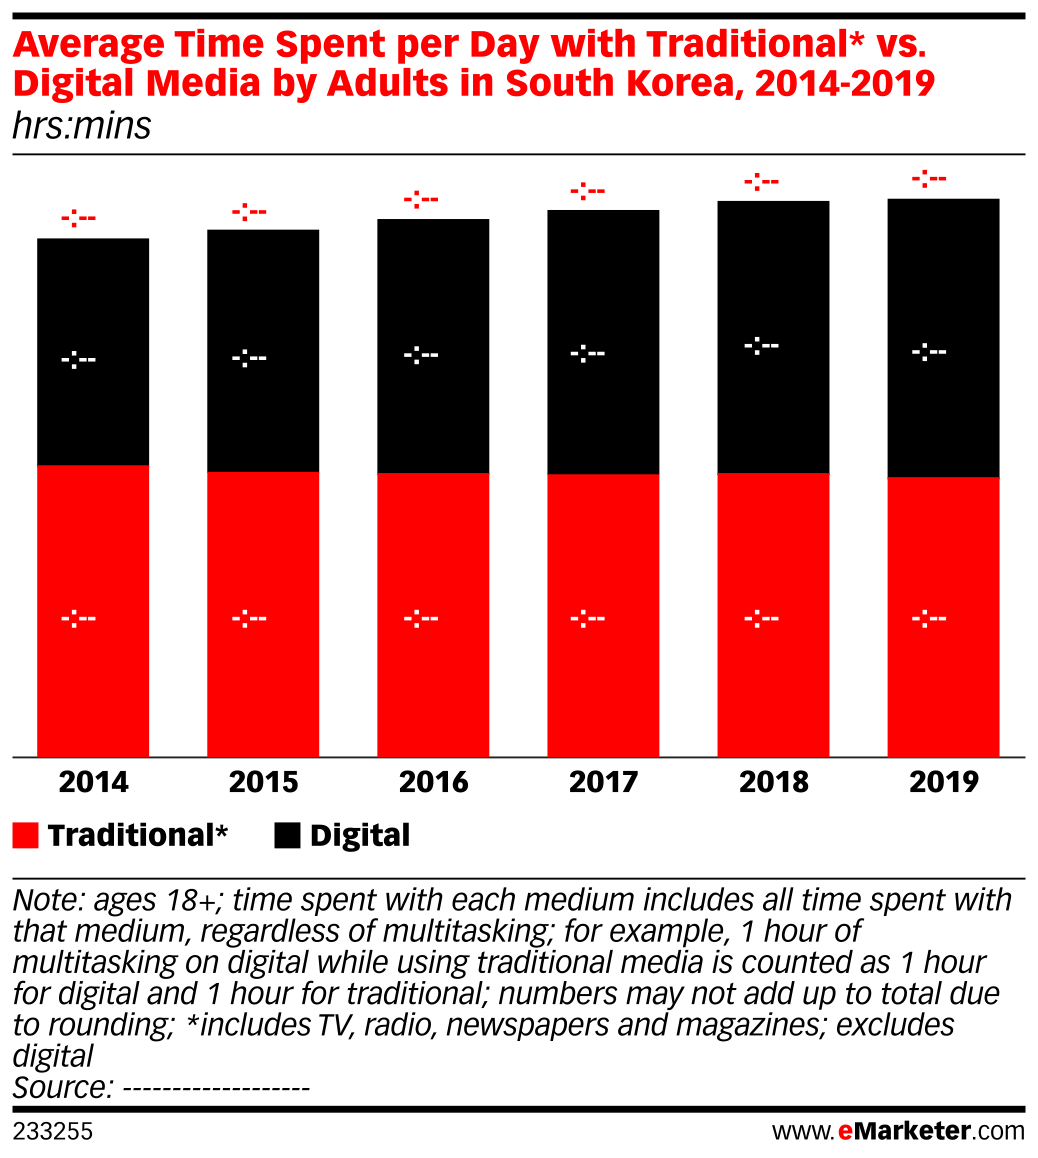 Average Time Spent per Day with Traditional* vs. Digital Media by Adults in South Korea, 2014-2019 (hrs:mins)